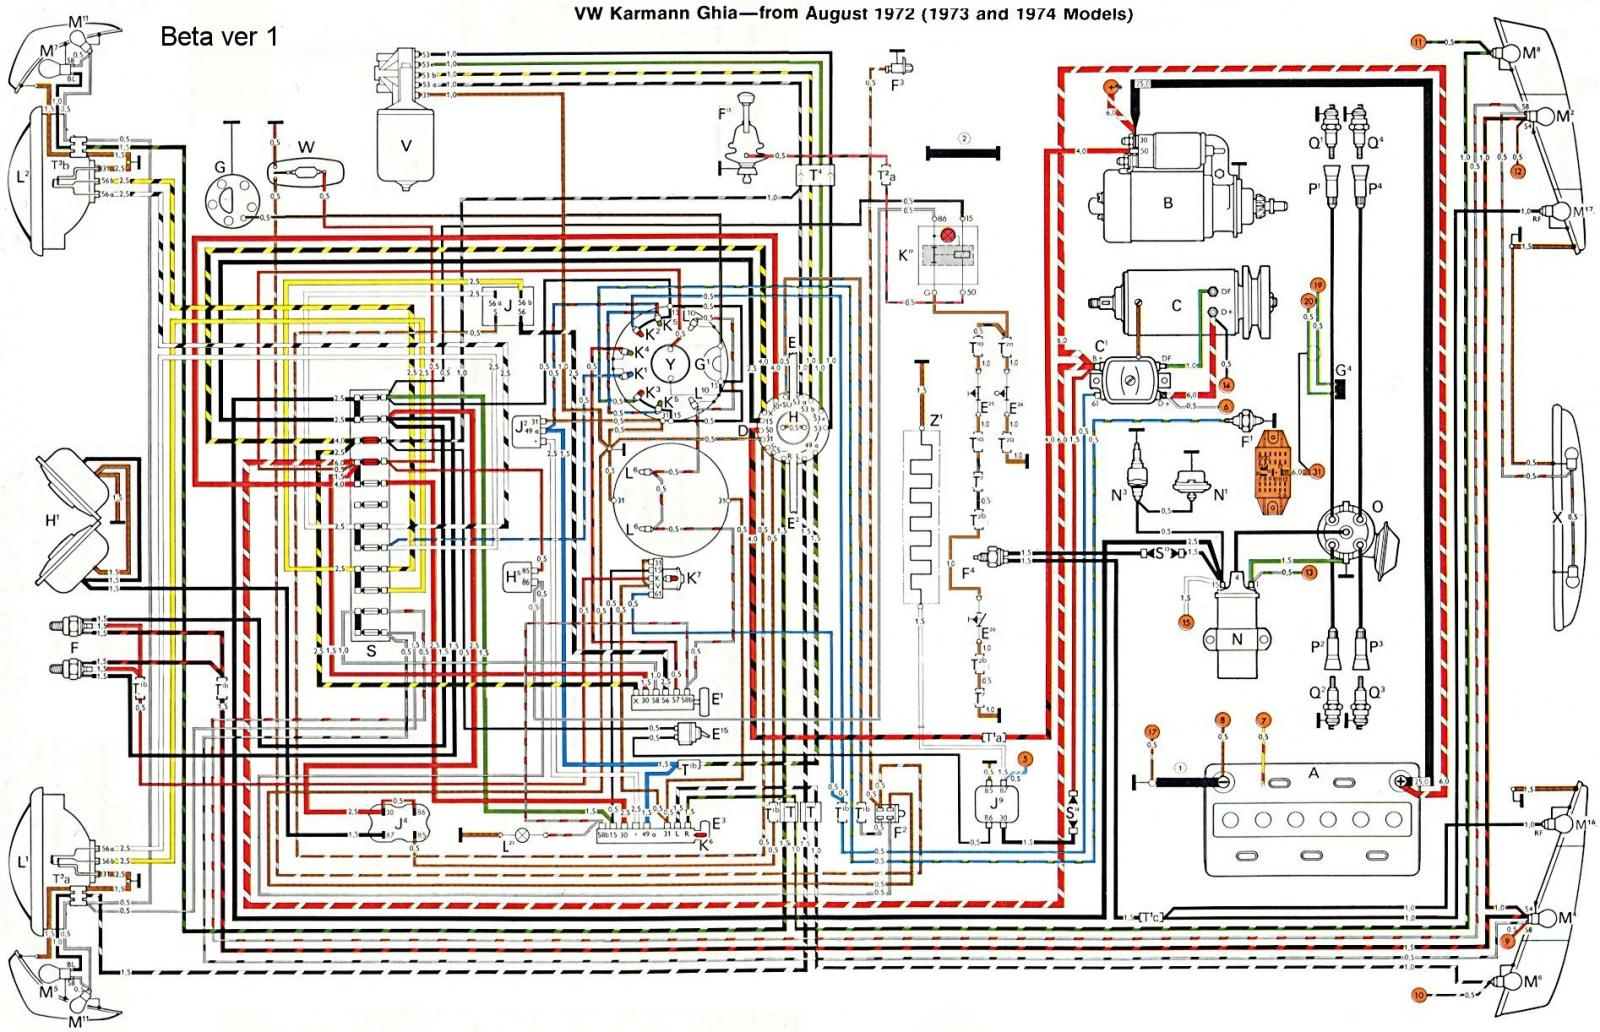 1188328 thesamba com ghia view topic 73 74 wiring diagram 1980 porsche 911 wiring diagram at n-0.co